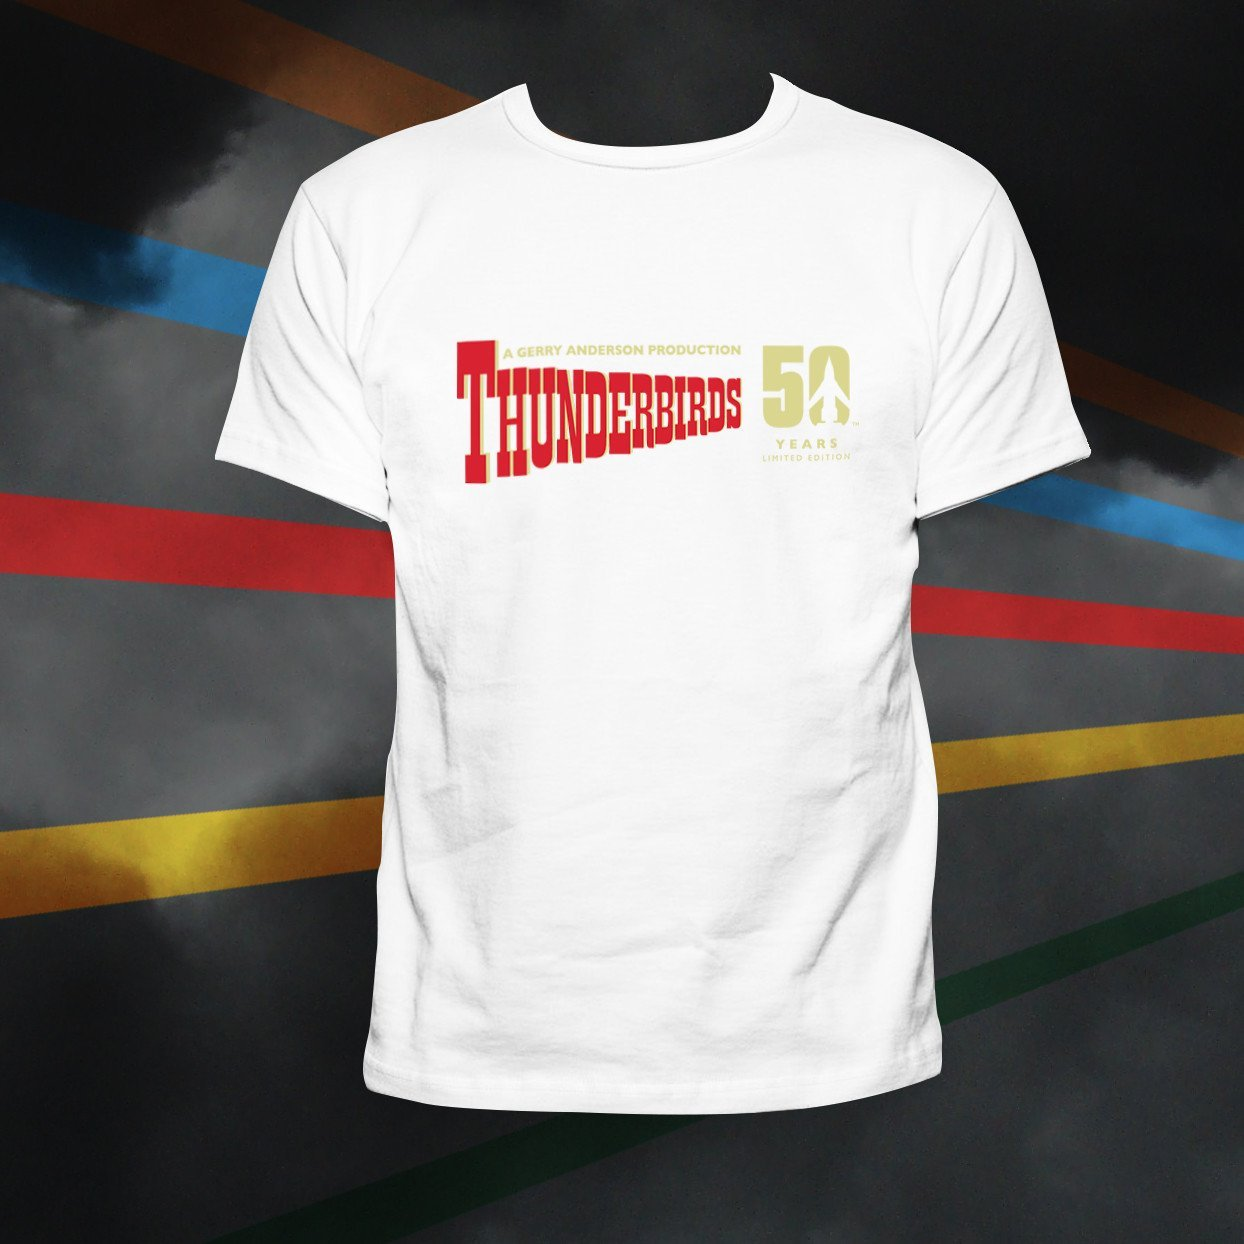 Celebrate in style with the Thunderbirds 50th Anniversary T-Shirt | The Gerry Anderson Store